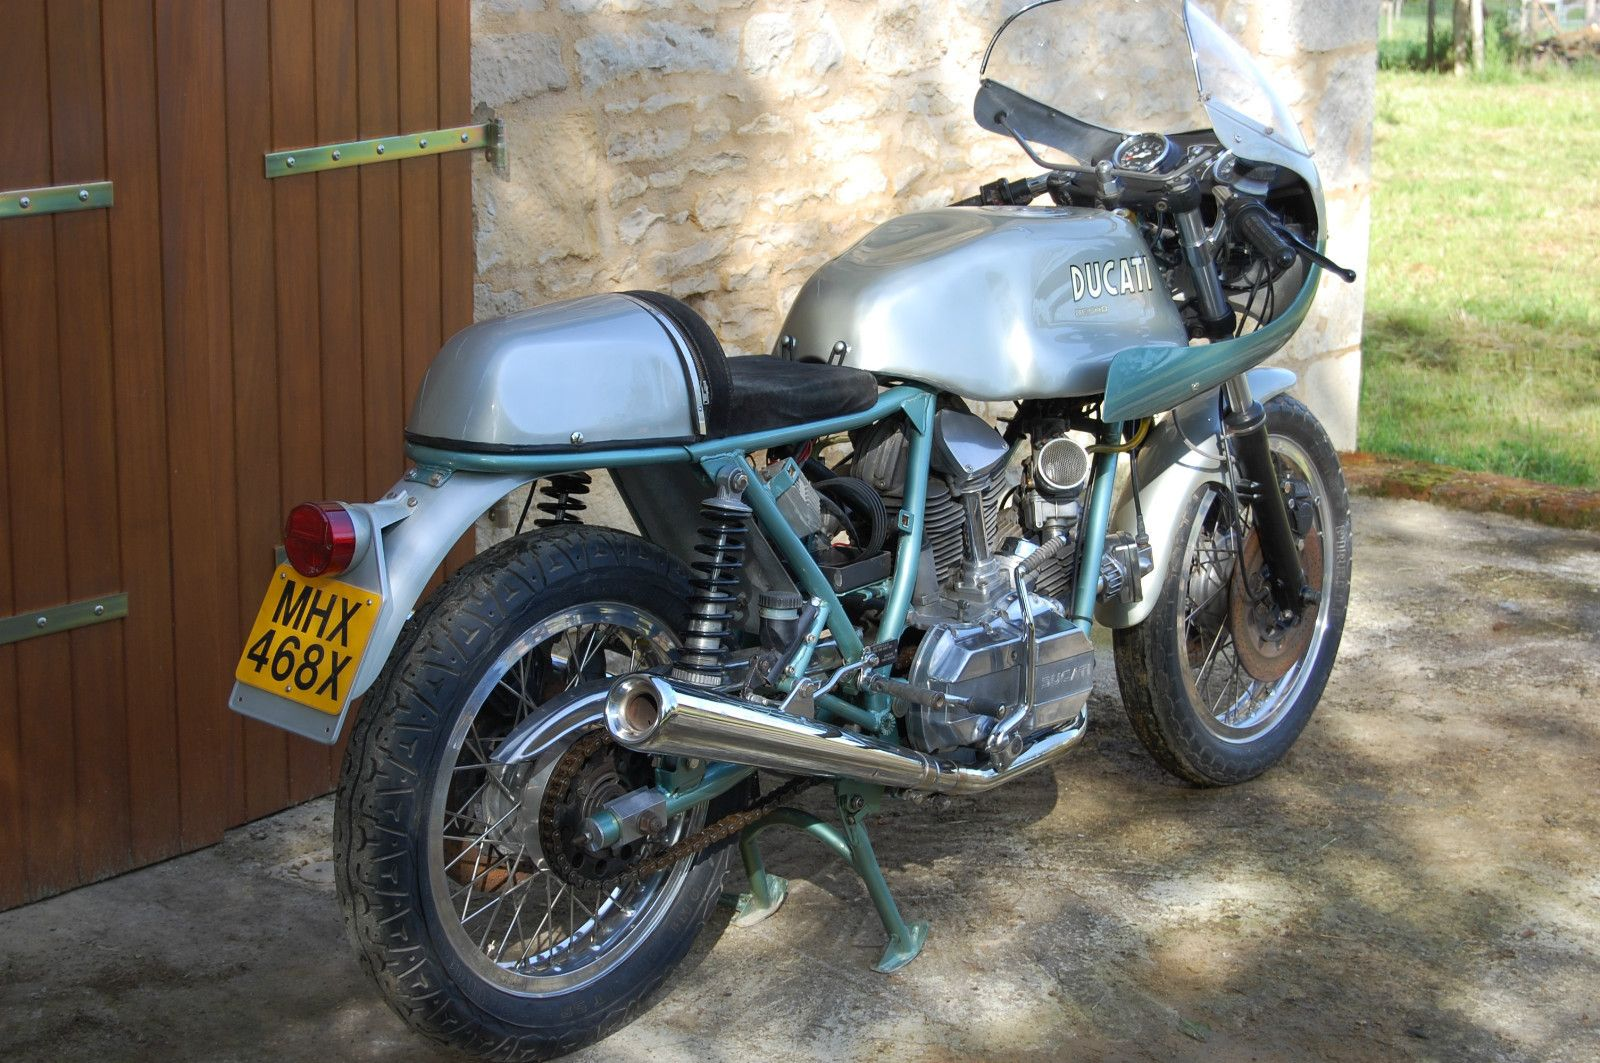 For Sale Ducati 900ss Bevel Drive Cafe Racer Duck Egg Green And